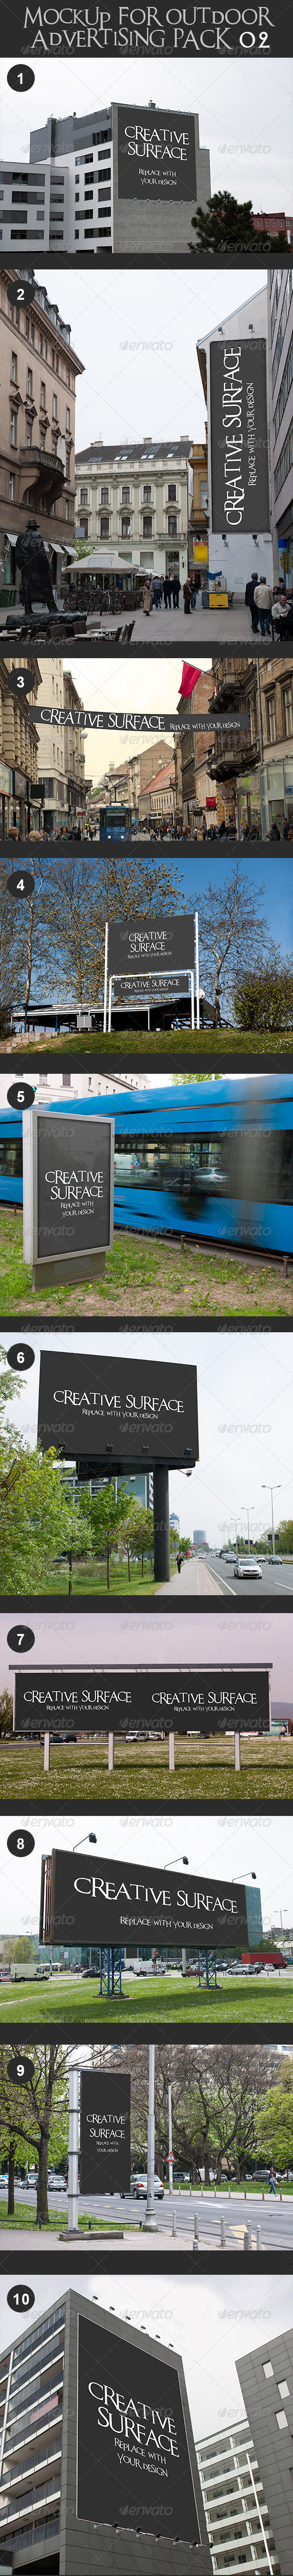 GraphicRiver 10 Mock Up s for Outdoor Advertising Pack 2 7423055